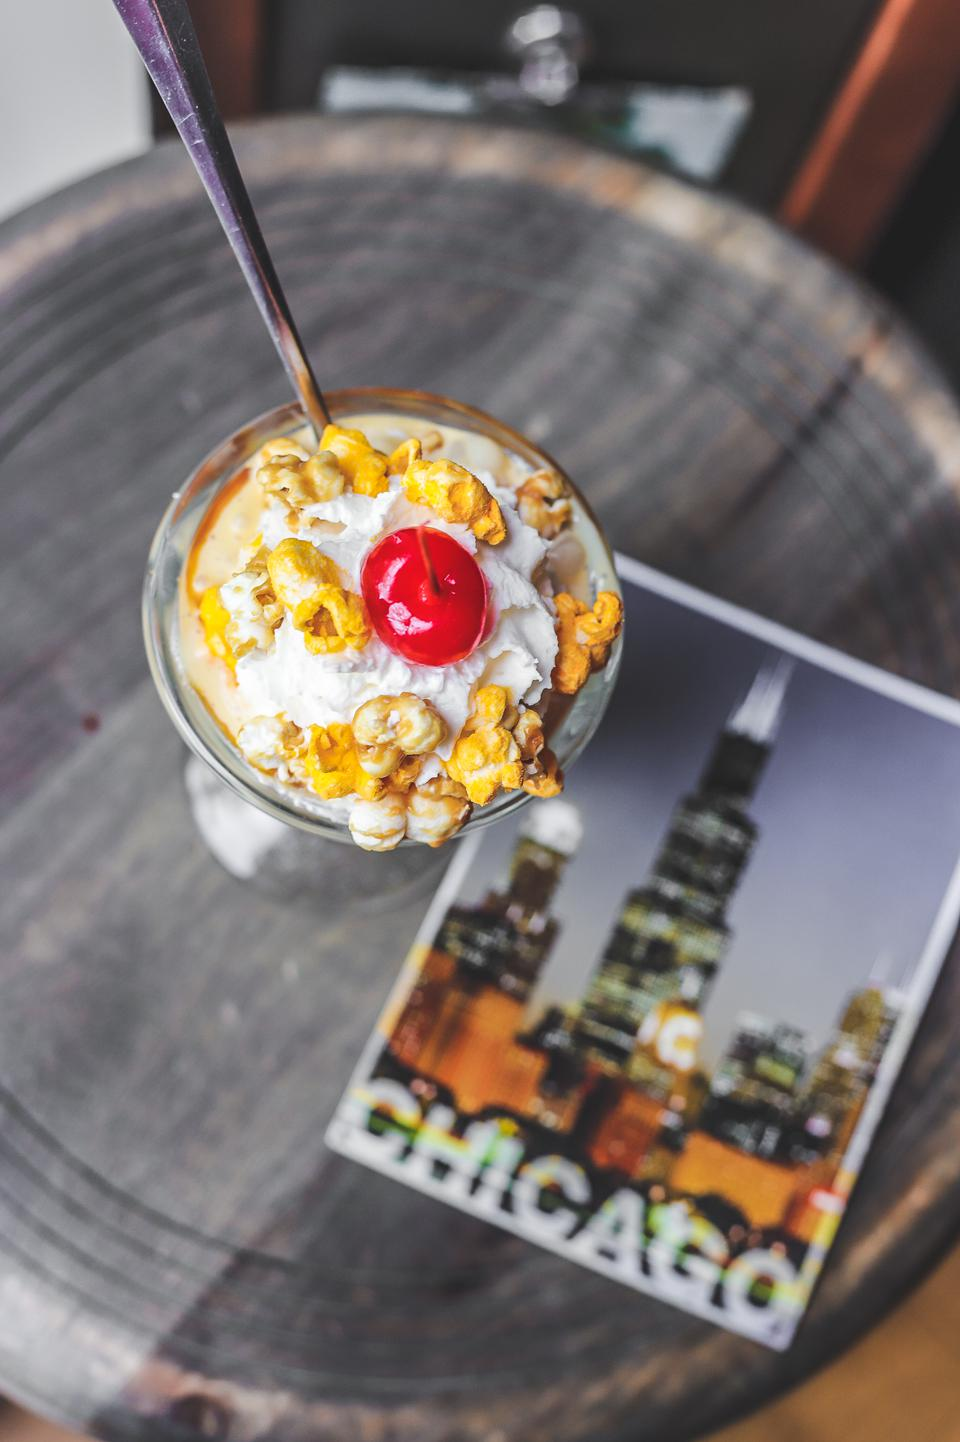 The Chicago Sundae at Cold Storage in Chicago